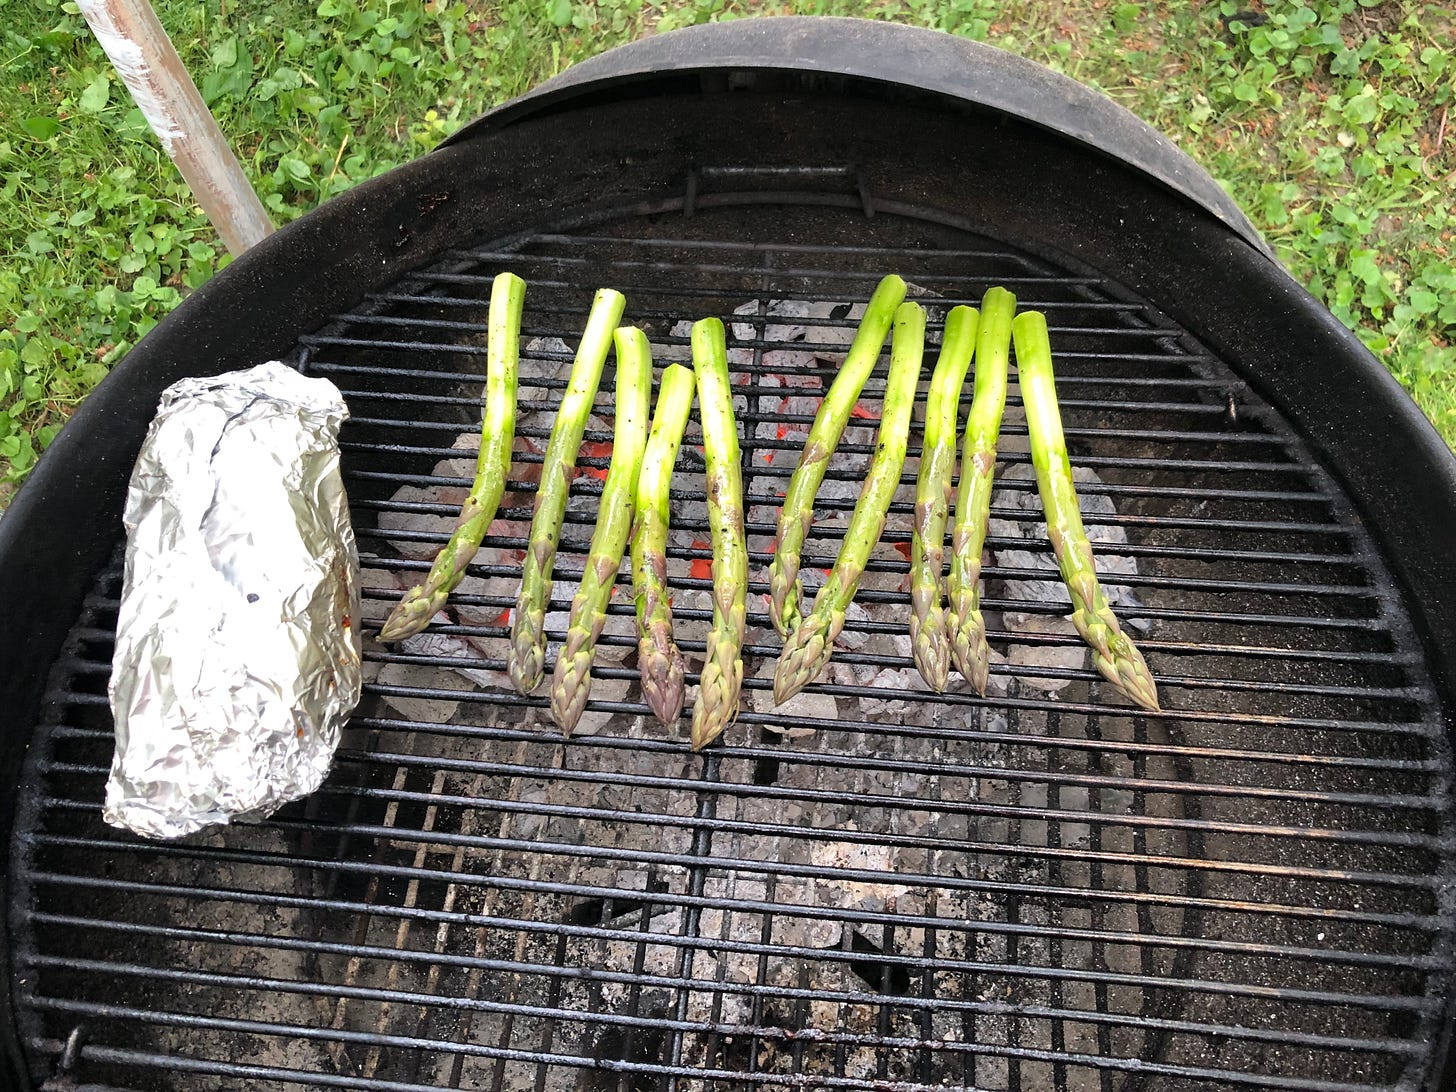 Asparagus grilling on a hot charcoal grill. Beside them on the grill is a foil packet.